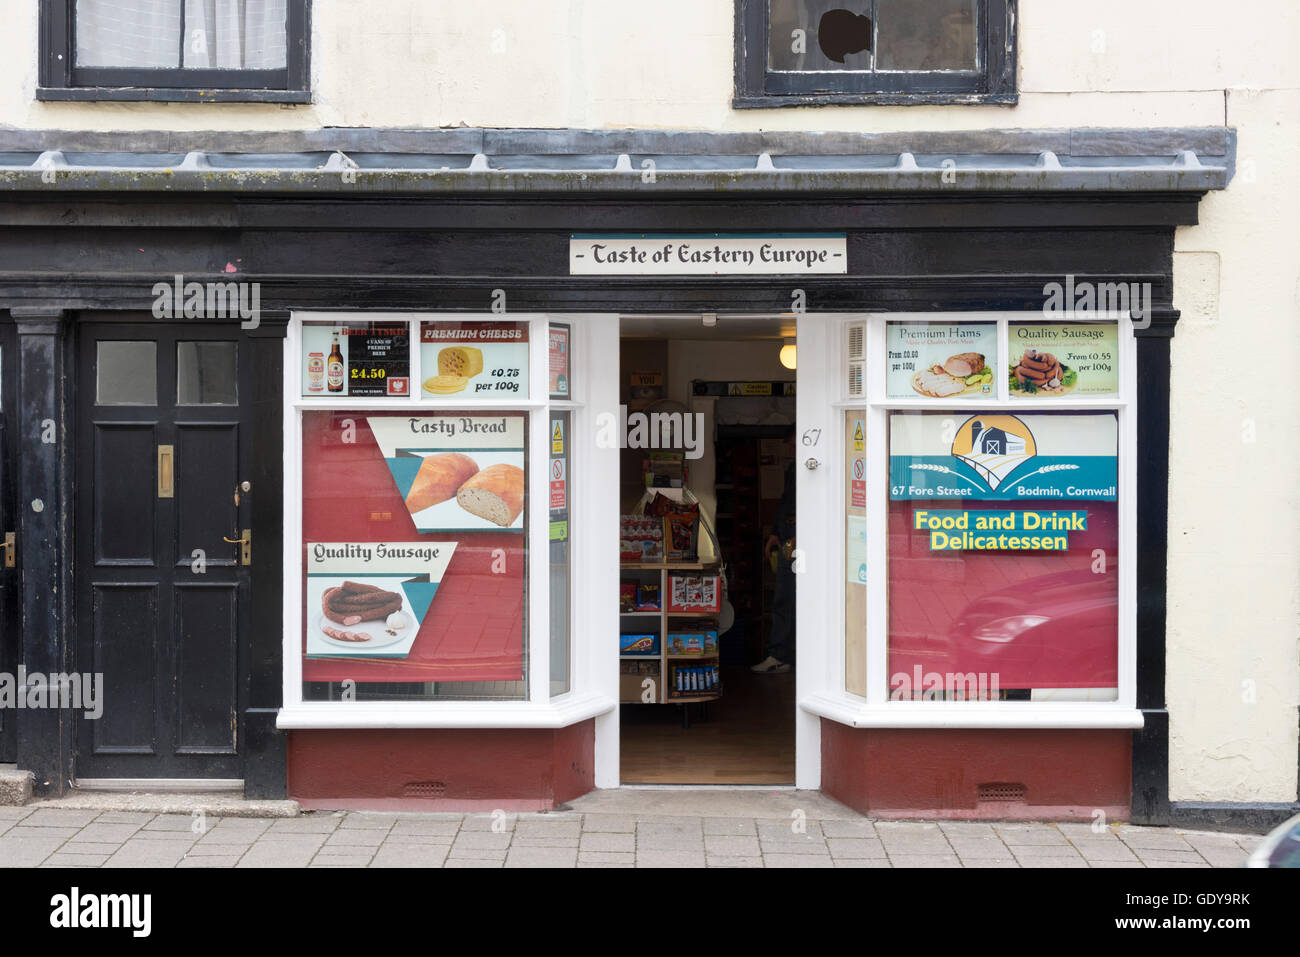 The Taste of Eastern Europe food shop or store in Bodmin Cornwall UK Stock Photo